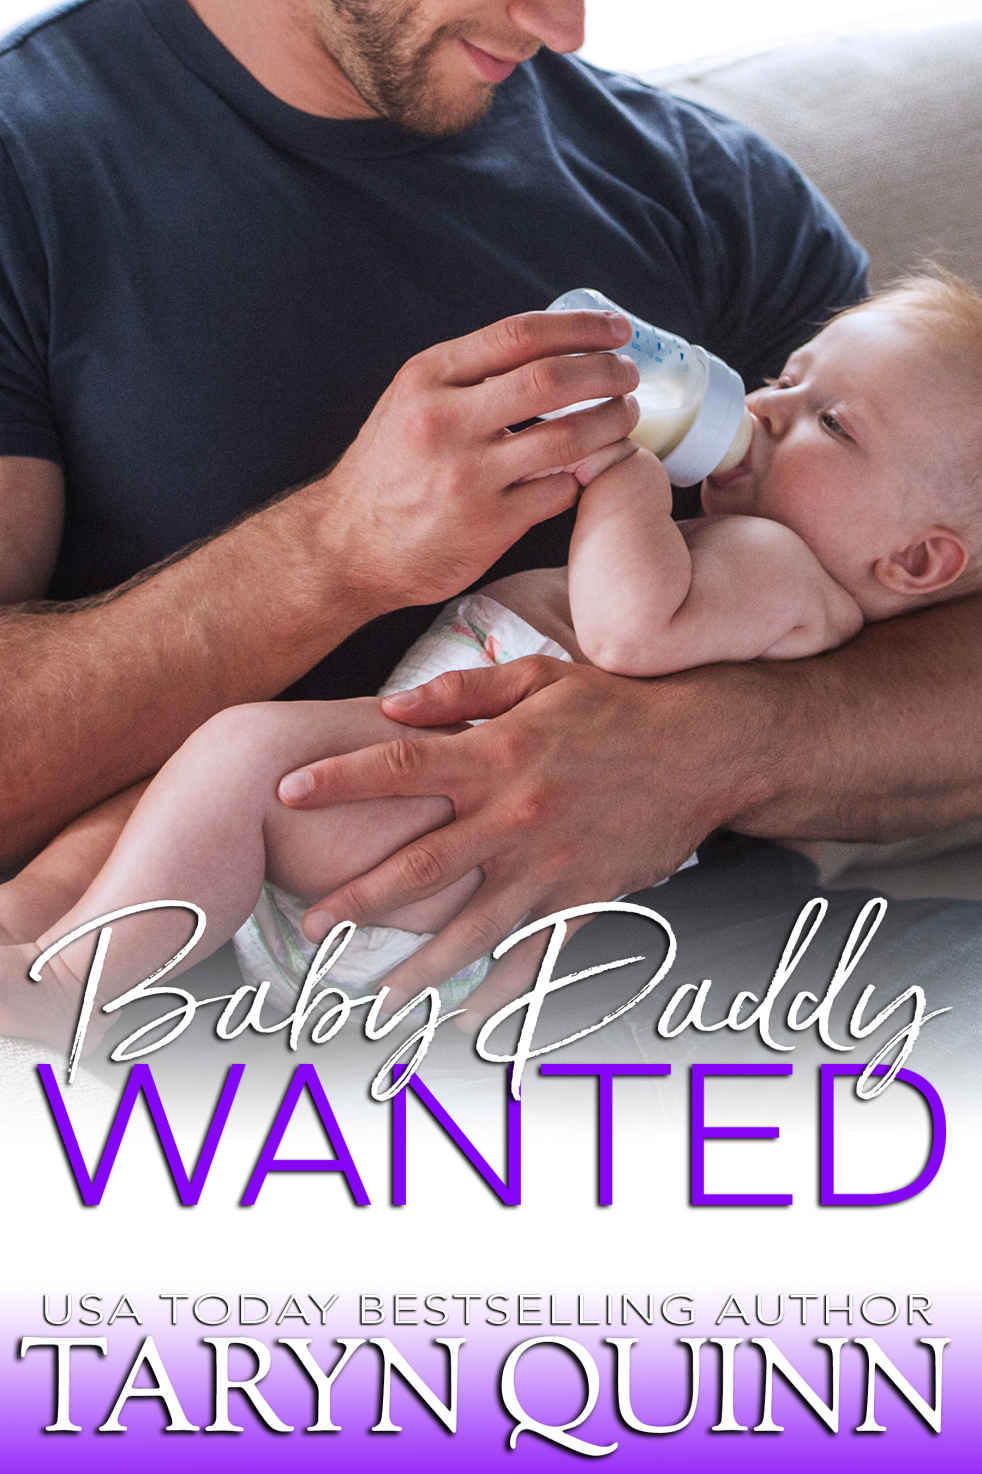 Baby Daddy Wanted: 1st Edition Pdf Free Download